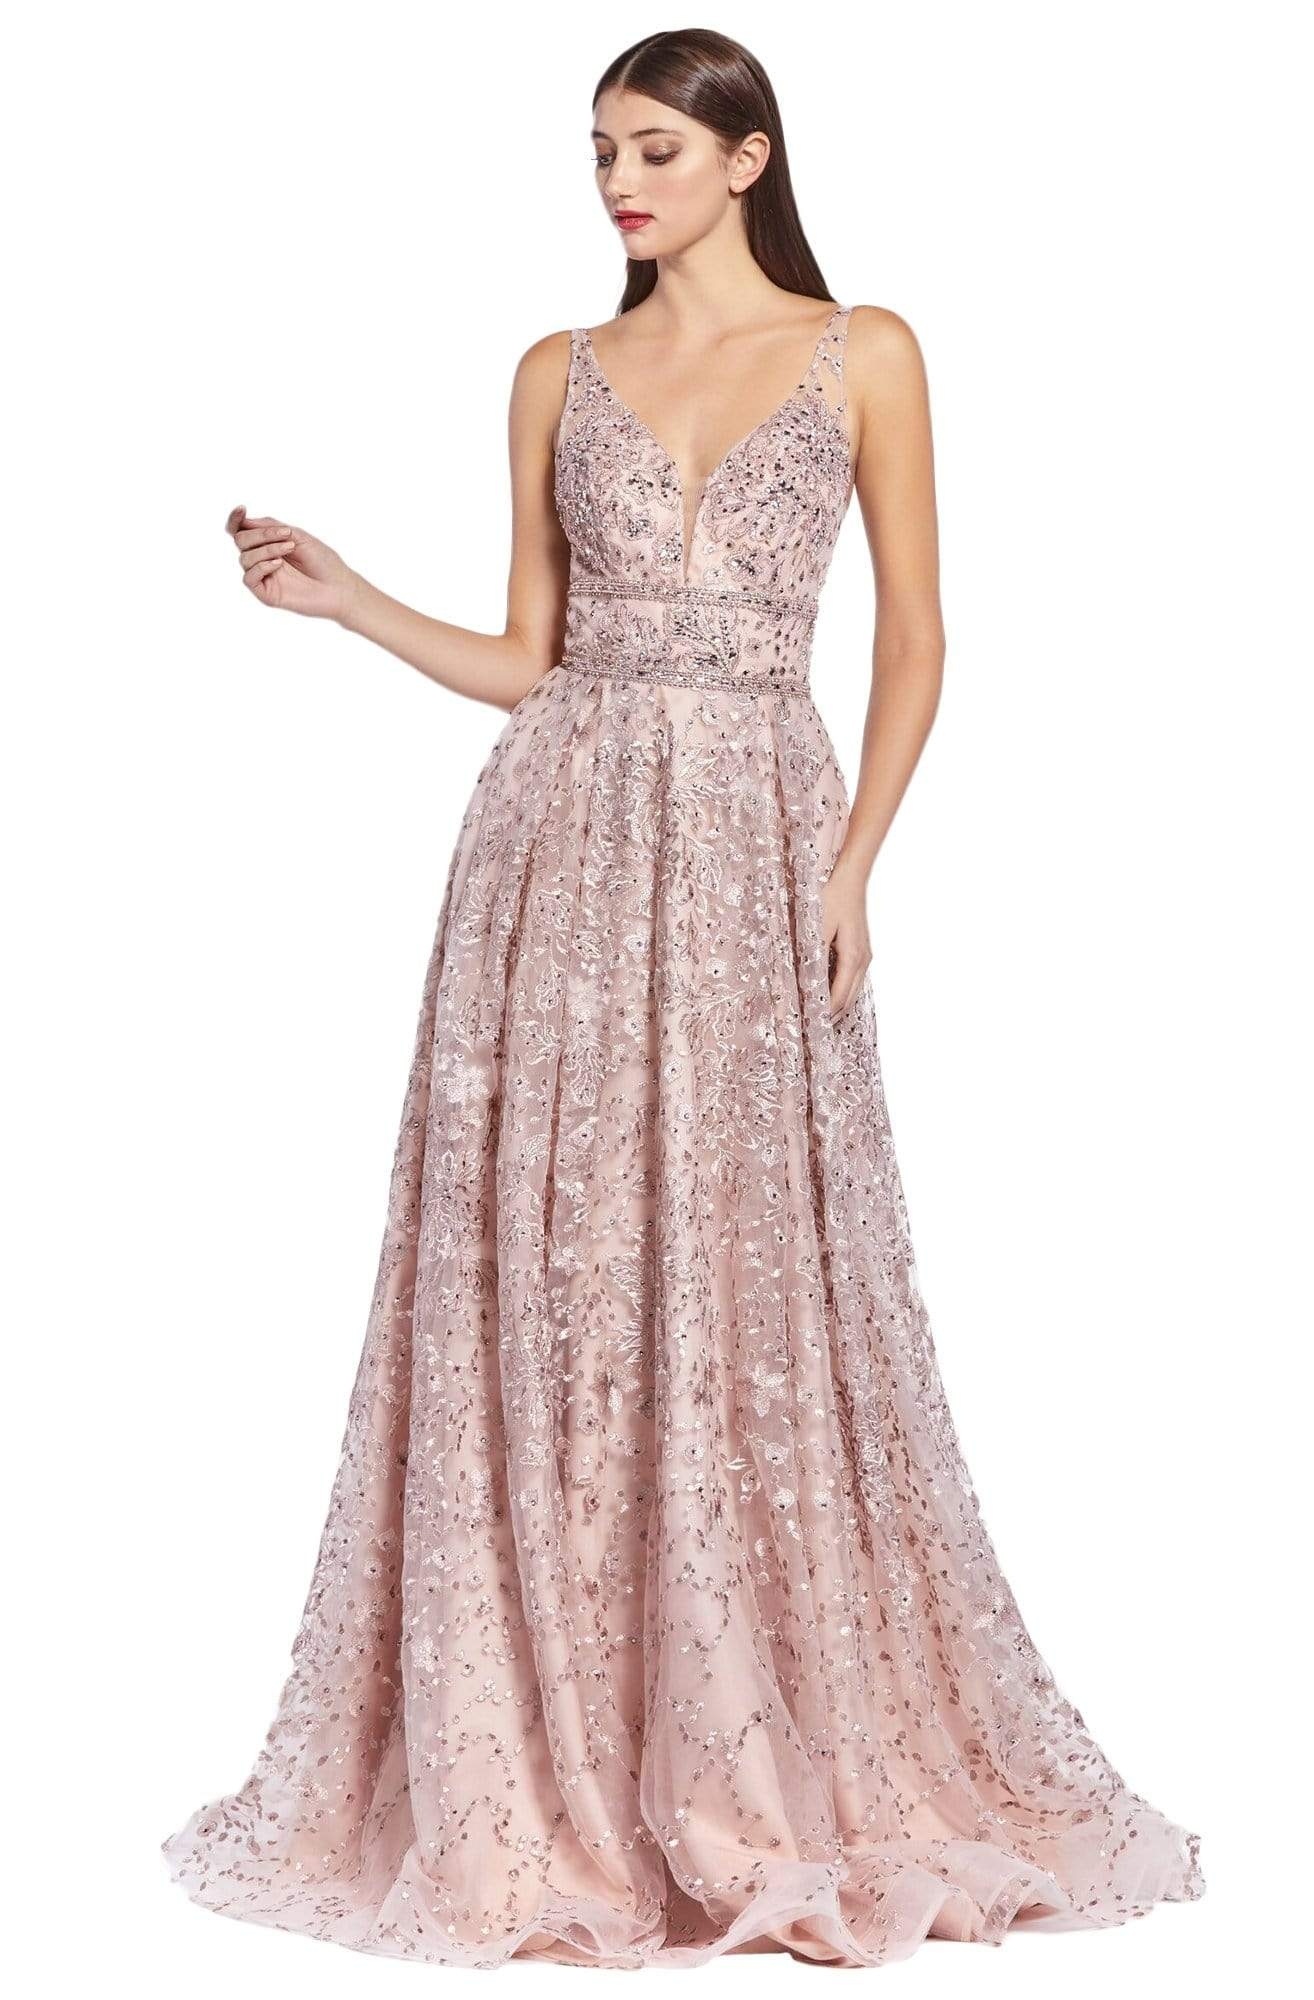 Cinderella Divine - CR840 Fit and Flare Embellished Long Dress In Pink and Purple